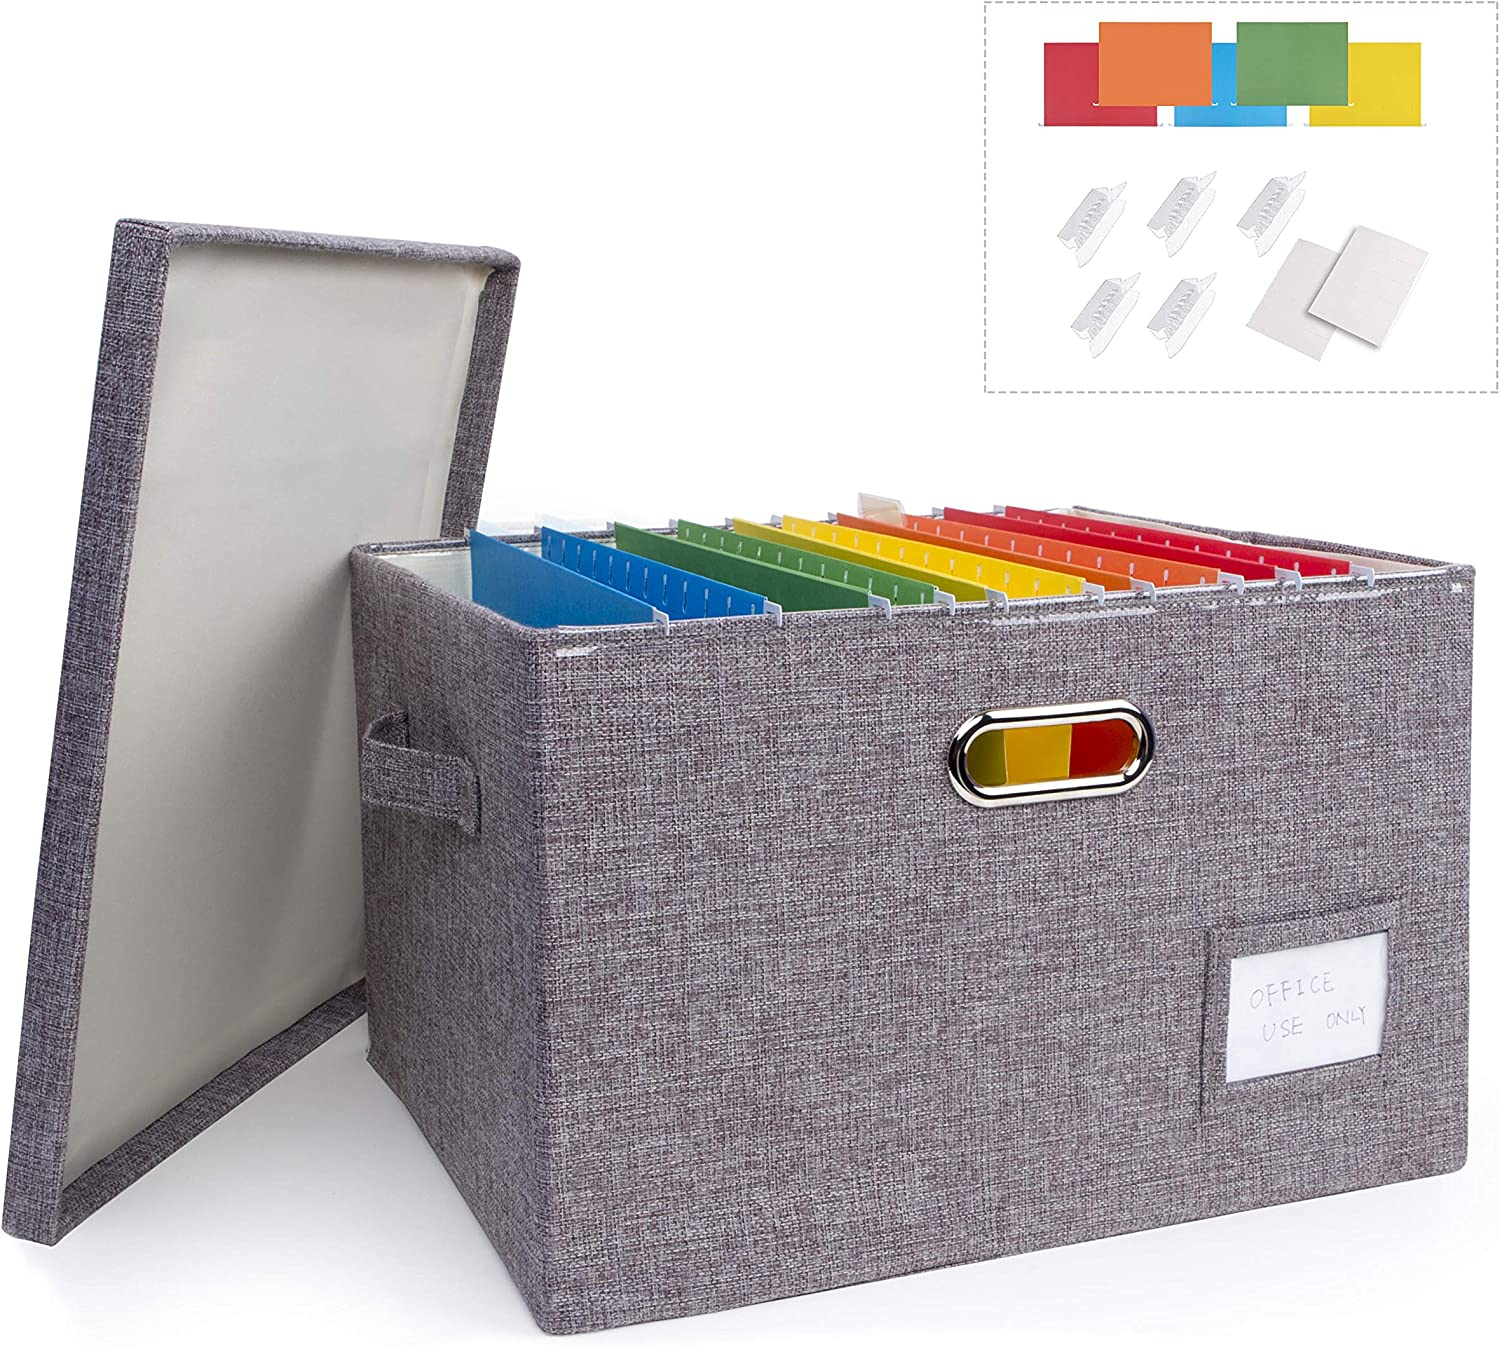 Collapsible Linen File Organizer Box, Easy to Slide File Folders, Compatible with Letter/Legal Hanging Filing Organization,Durable File Storage Organizer for Office Work/Home/Decor (Gray, 1 Pack)